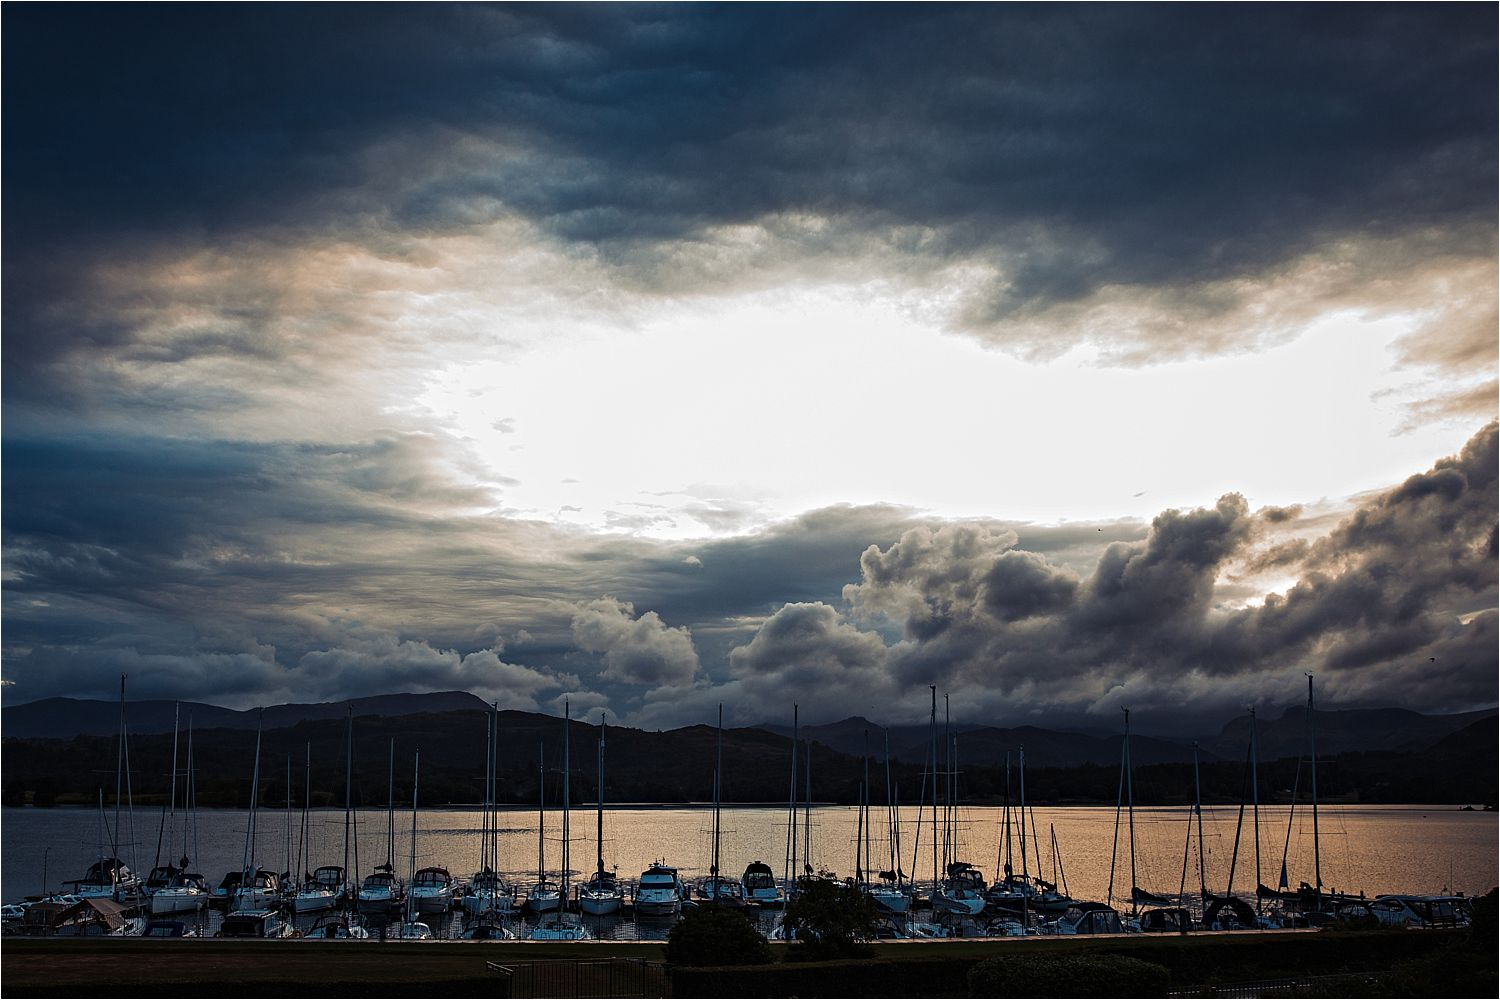 Sunset over the marina at the Low Wood Bay wedding venue, Lake District